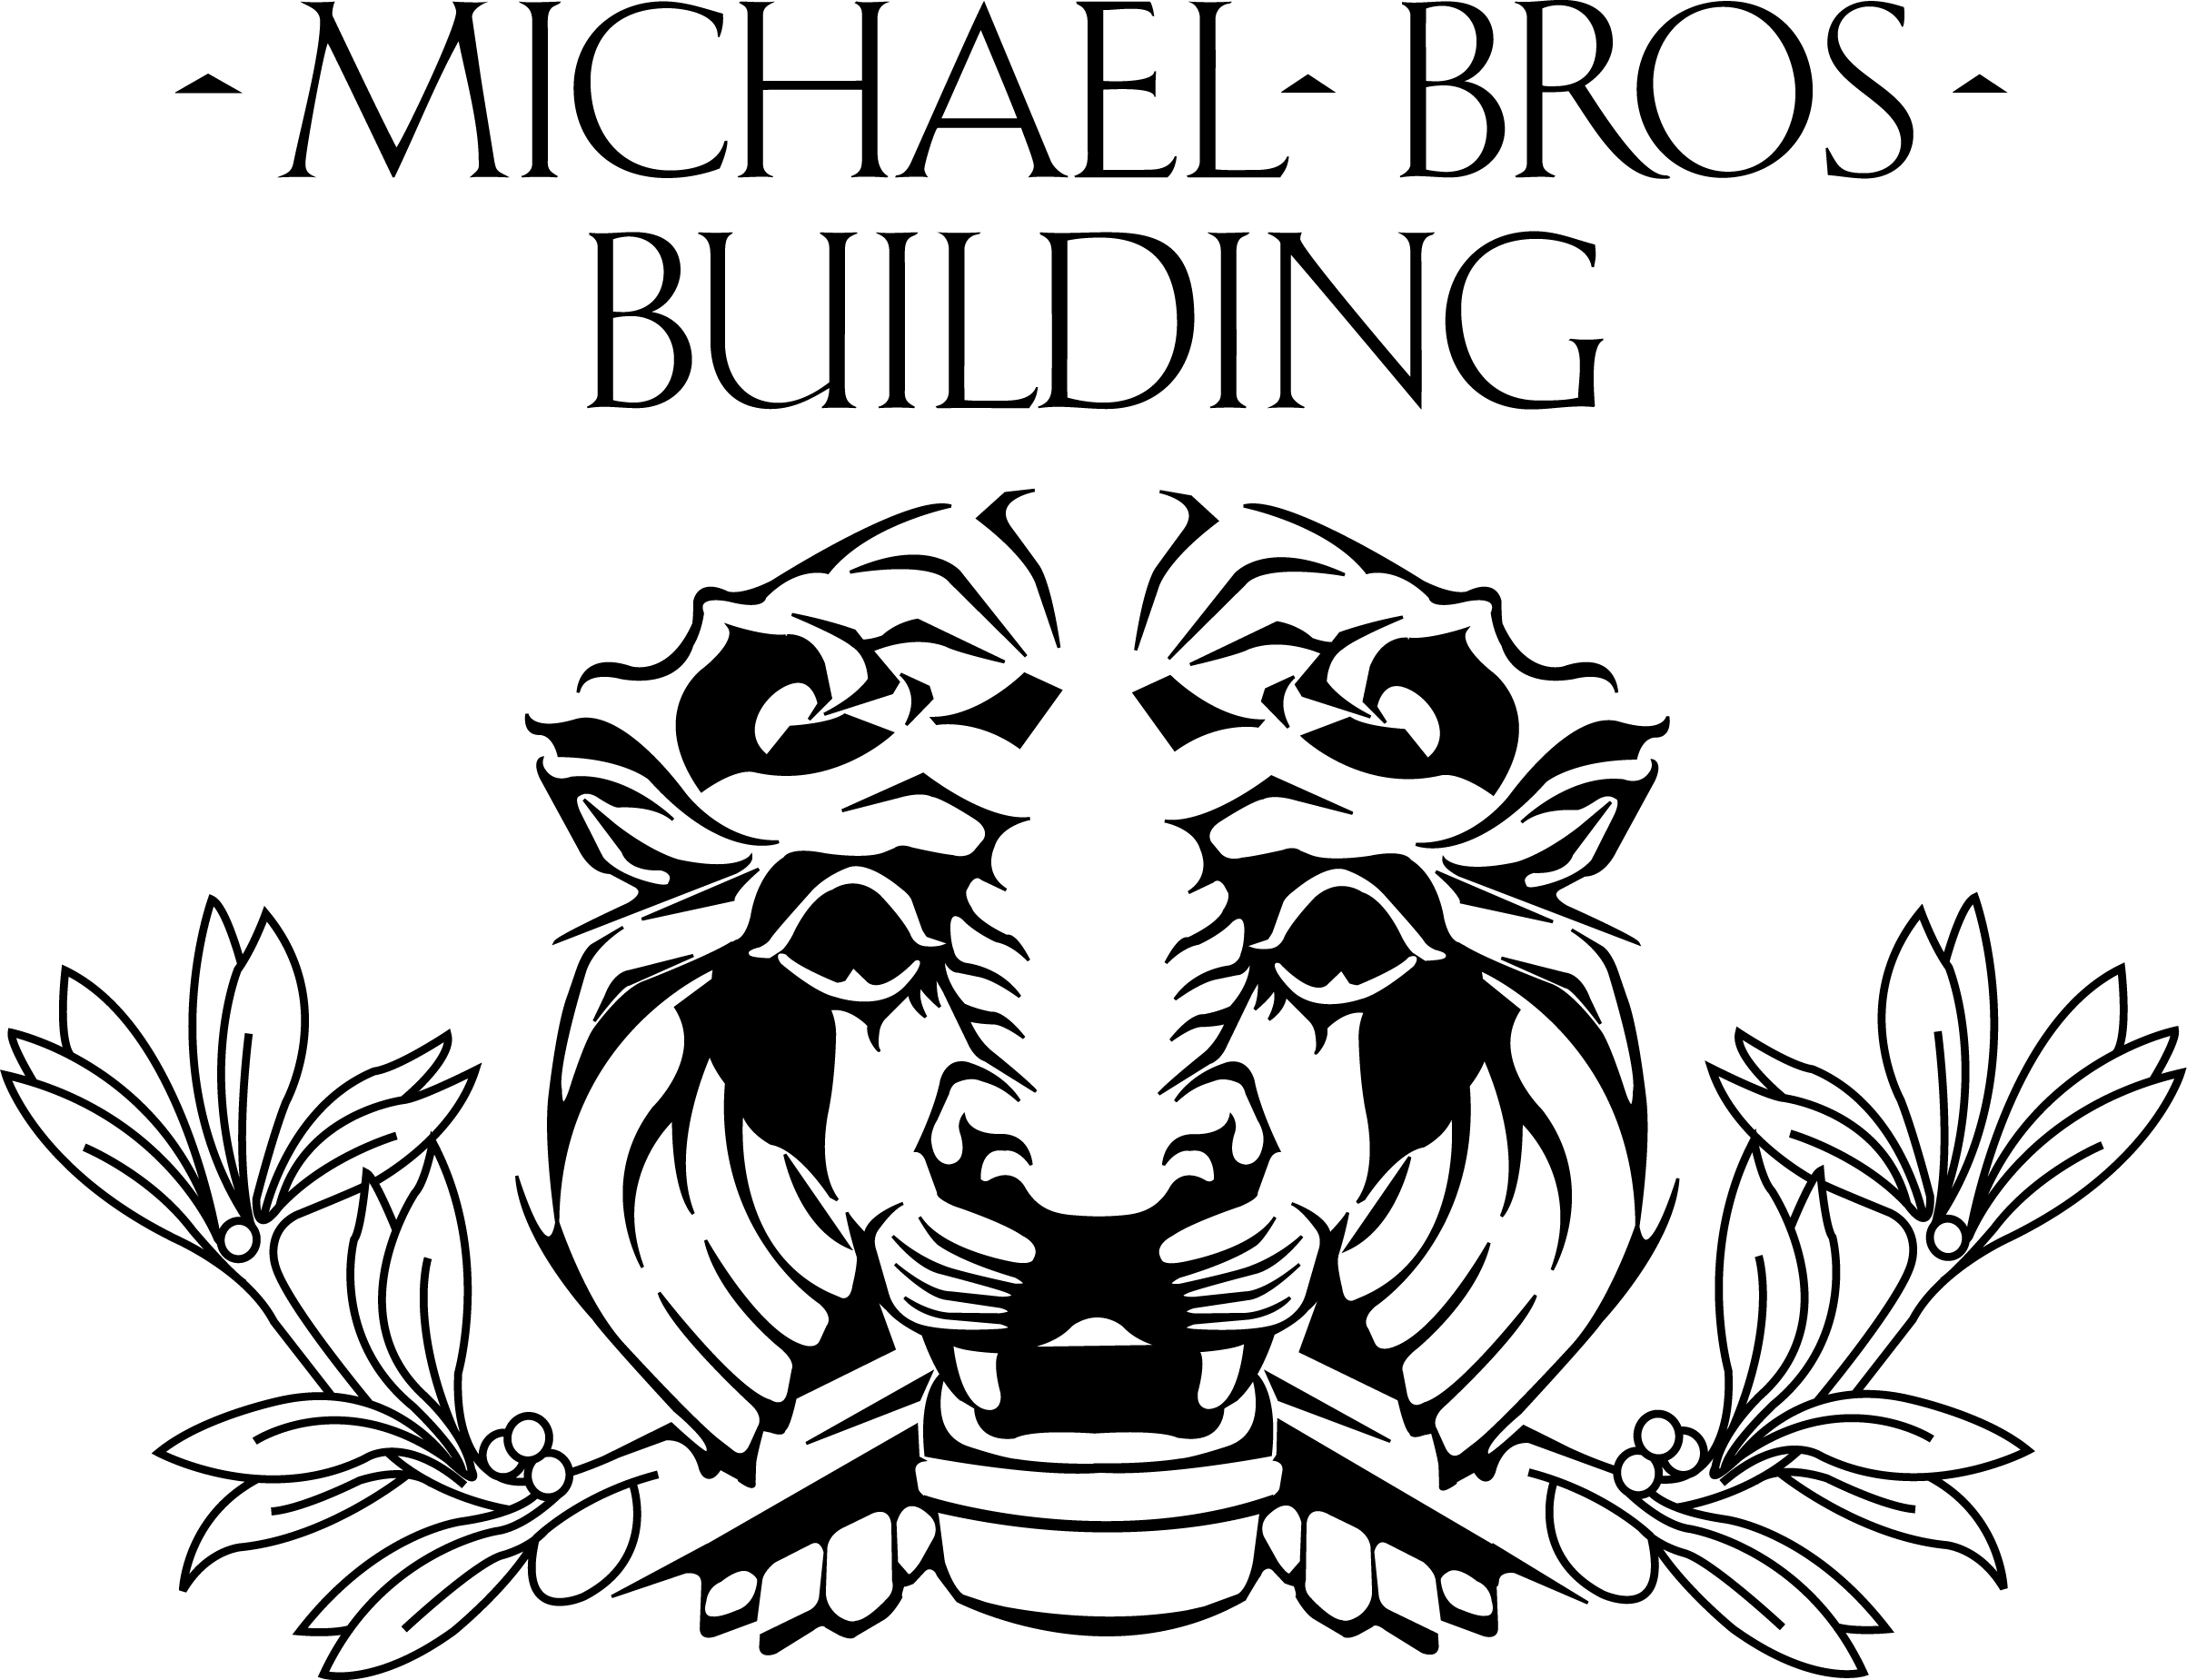 - For more information about the building and payments go to michaelbrothersbuilding.com